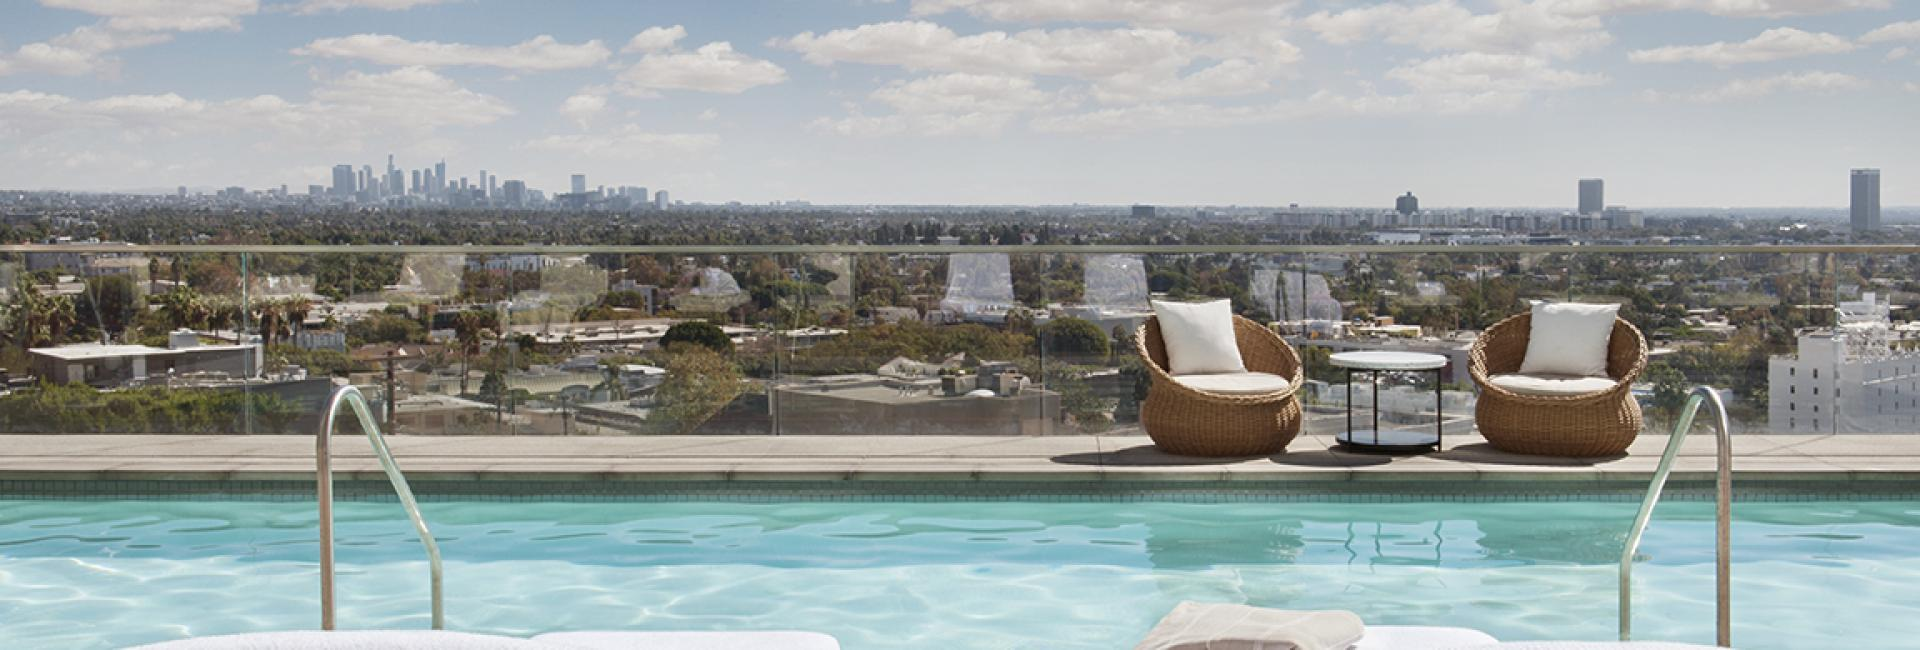 The Rooftop Pool Deck at Jeremy Hotel West Hollywood